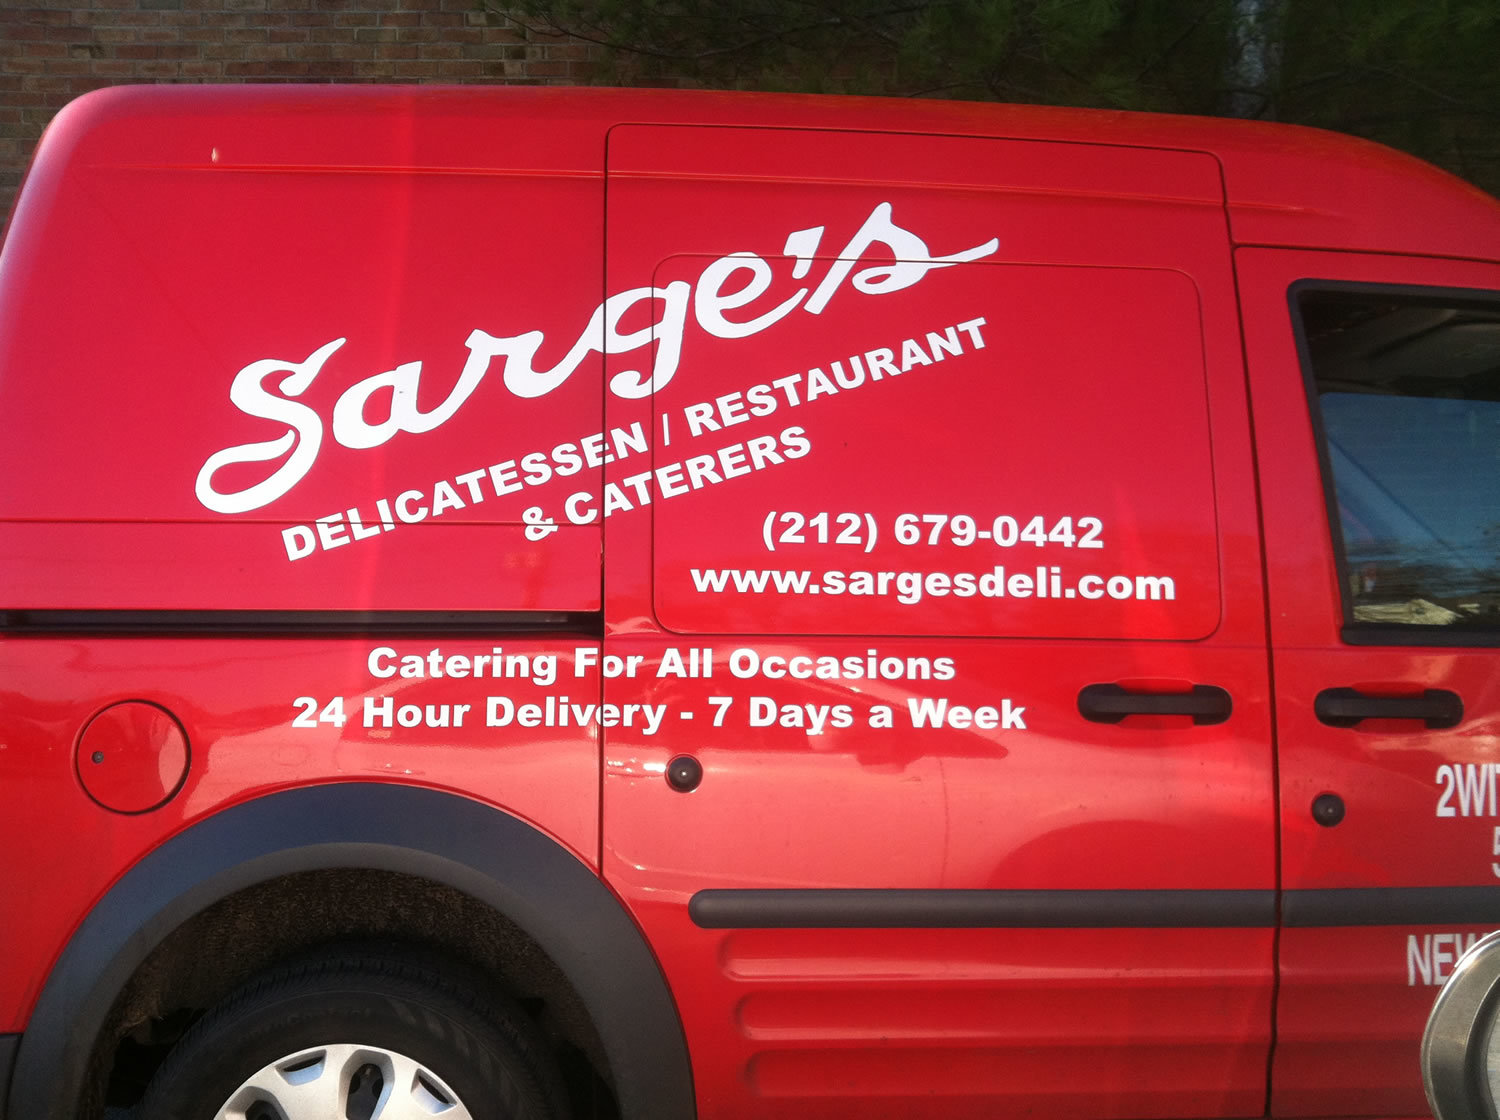 Sarge's Delivery Truck - Catering For Any Event!